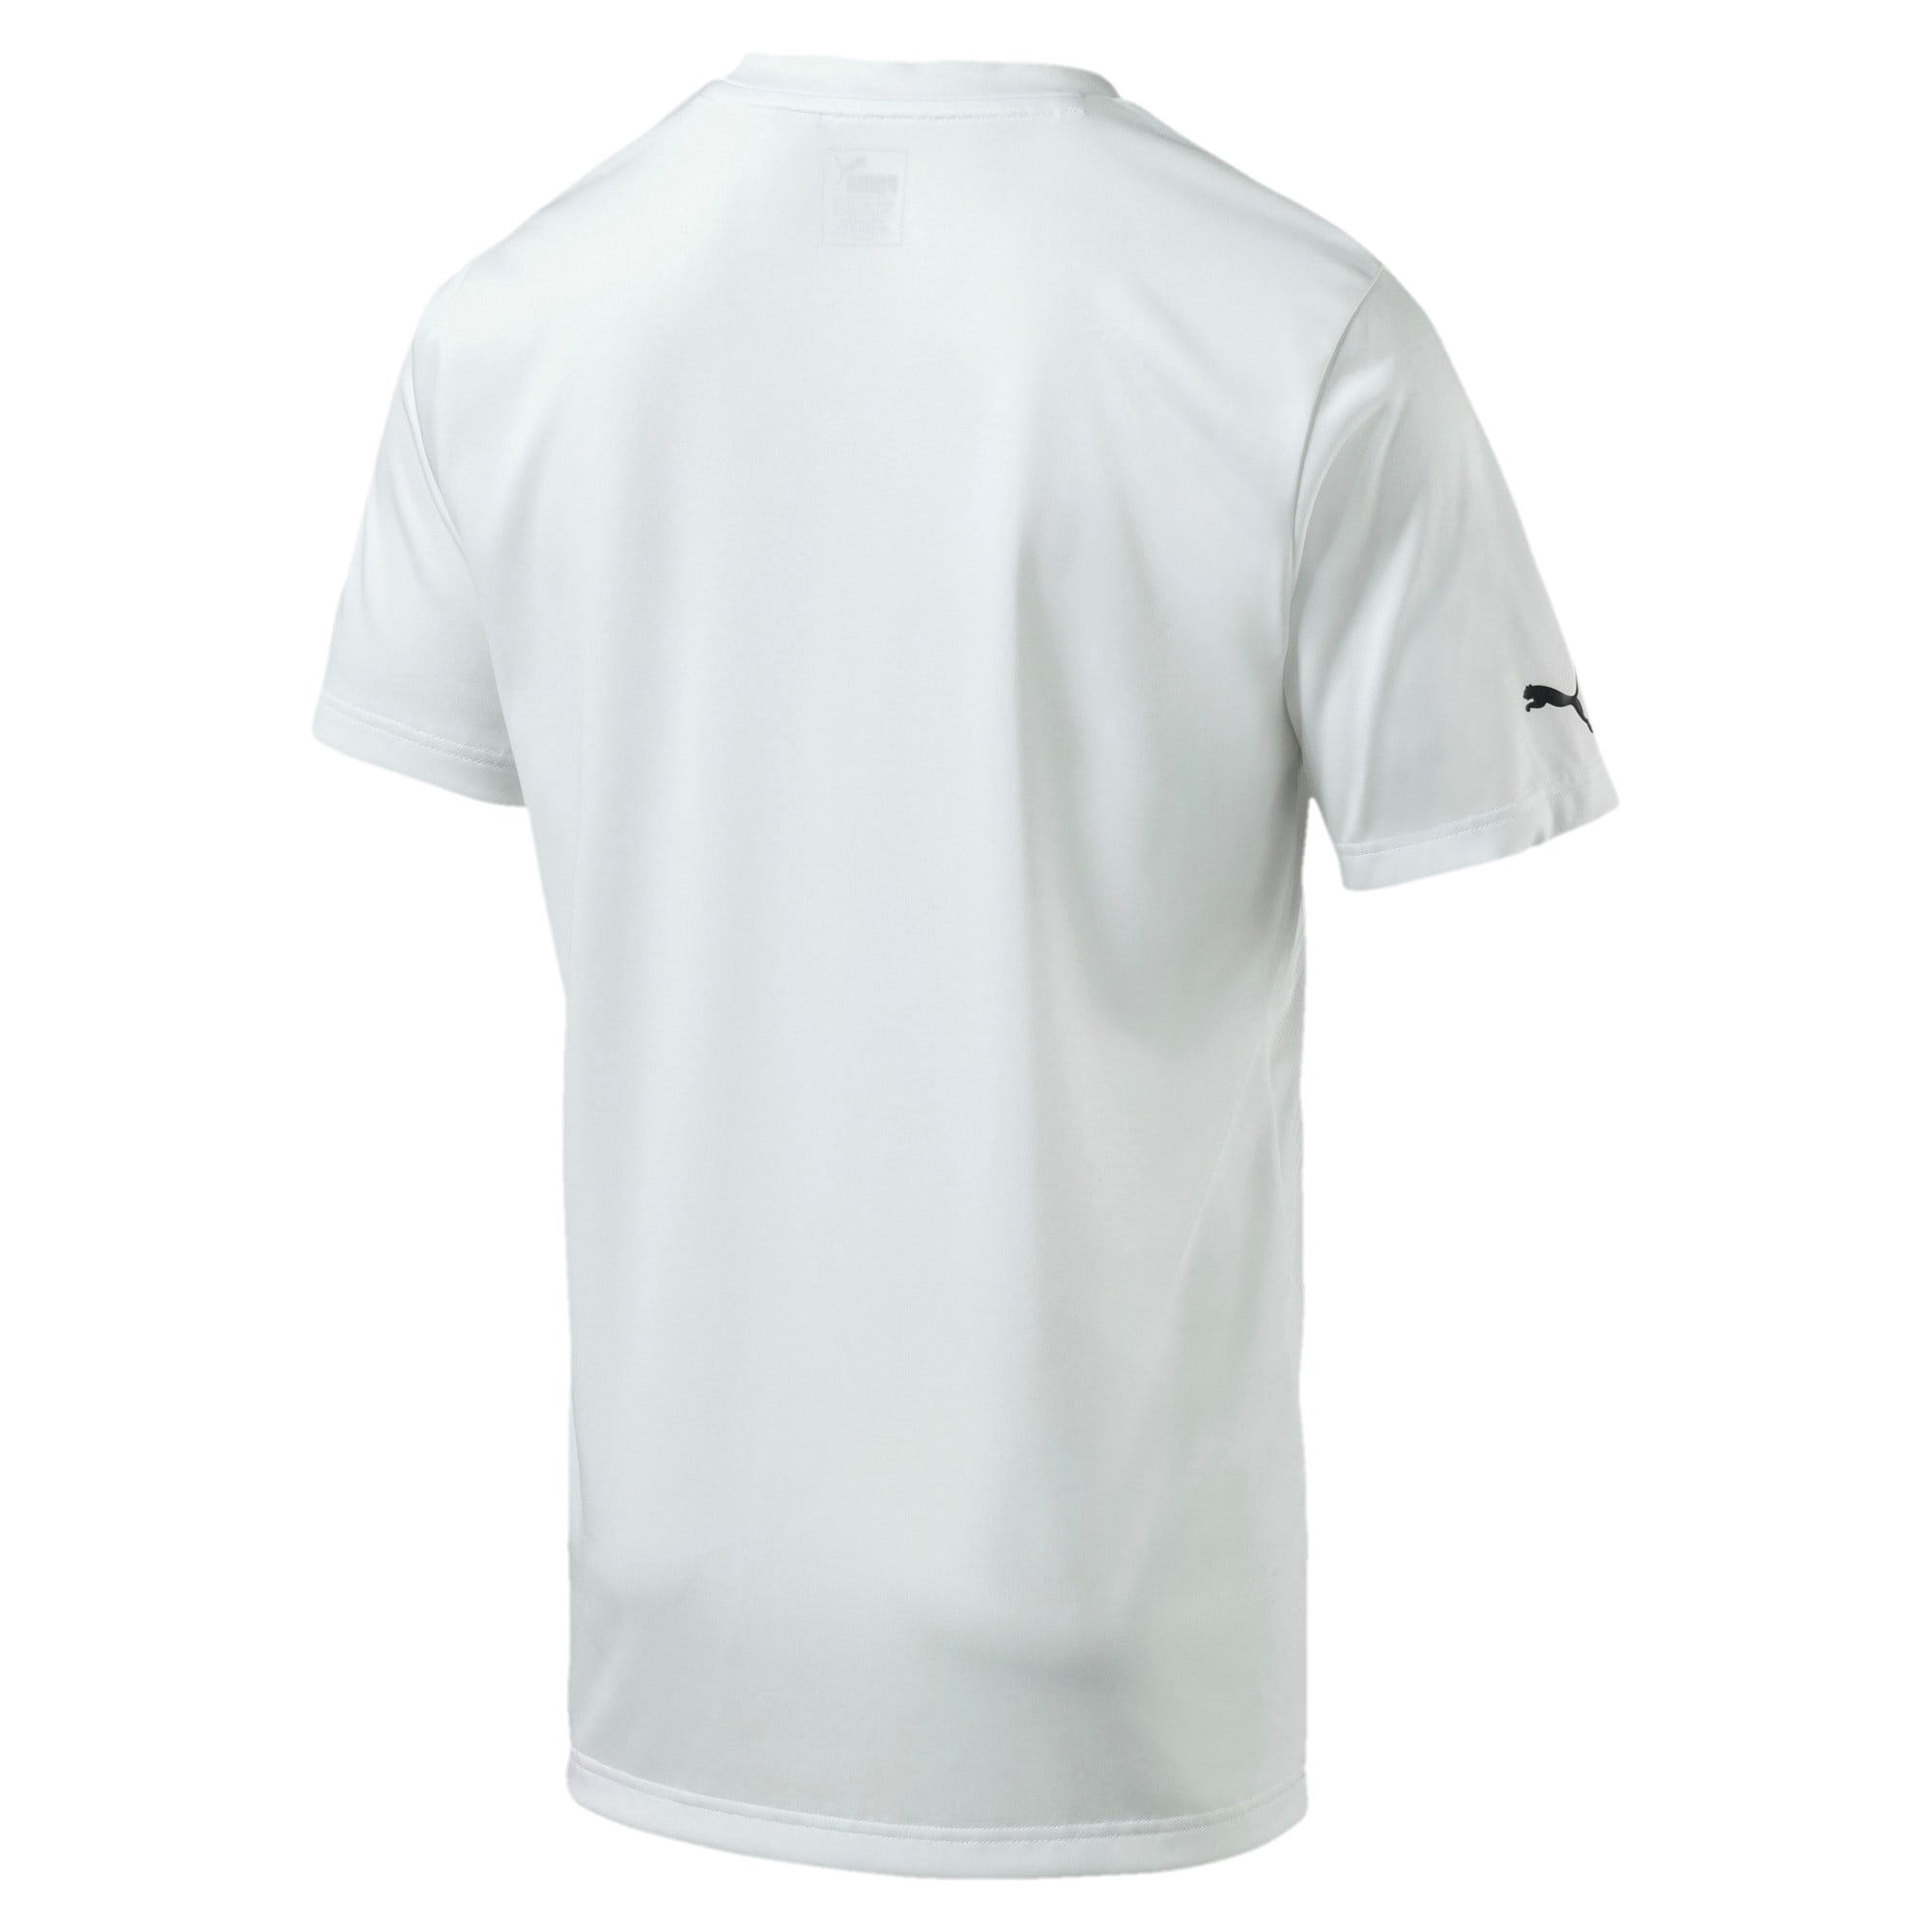 Thumbnail 2 of BMW Motorsport Speed Cat Evo Men's T-shirt, Puma White, medium-IND